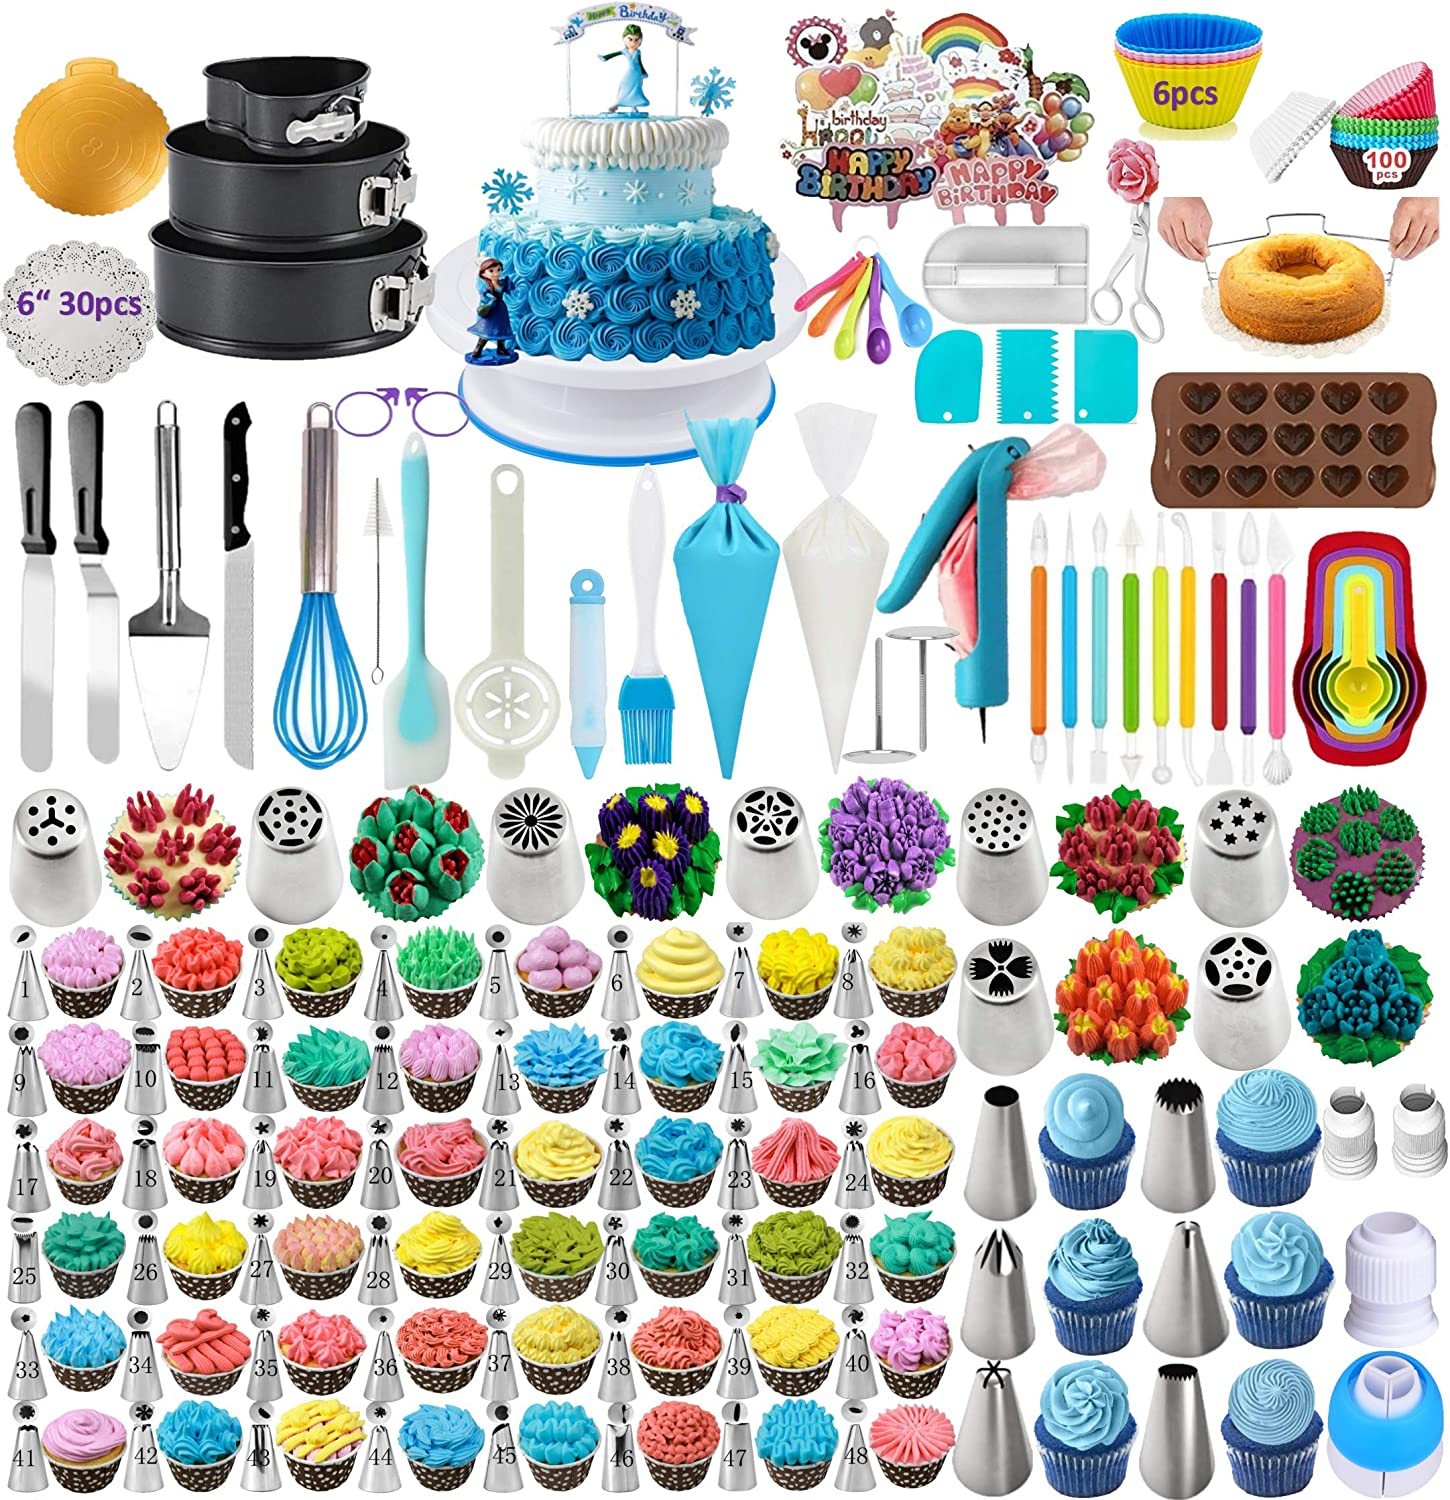 398PCS Baking Set with Springform Cake Pans Set Cake Decorating Supplies 2021Upgrade Cake Rotating Turntable,Cake Decorating Kits, Muffin Cup Mold, Cake Baking Supplies for Beginners and Cake Lovers